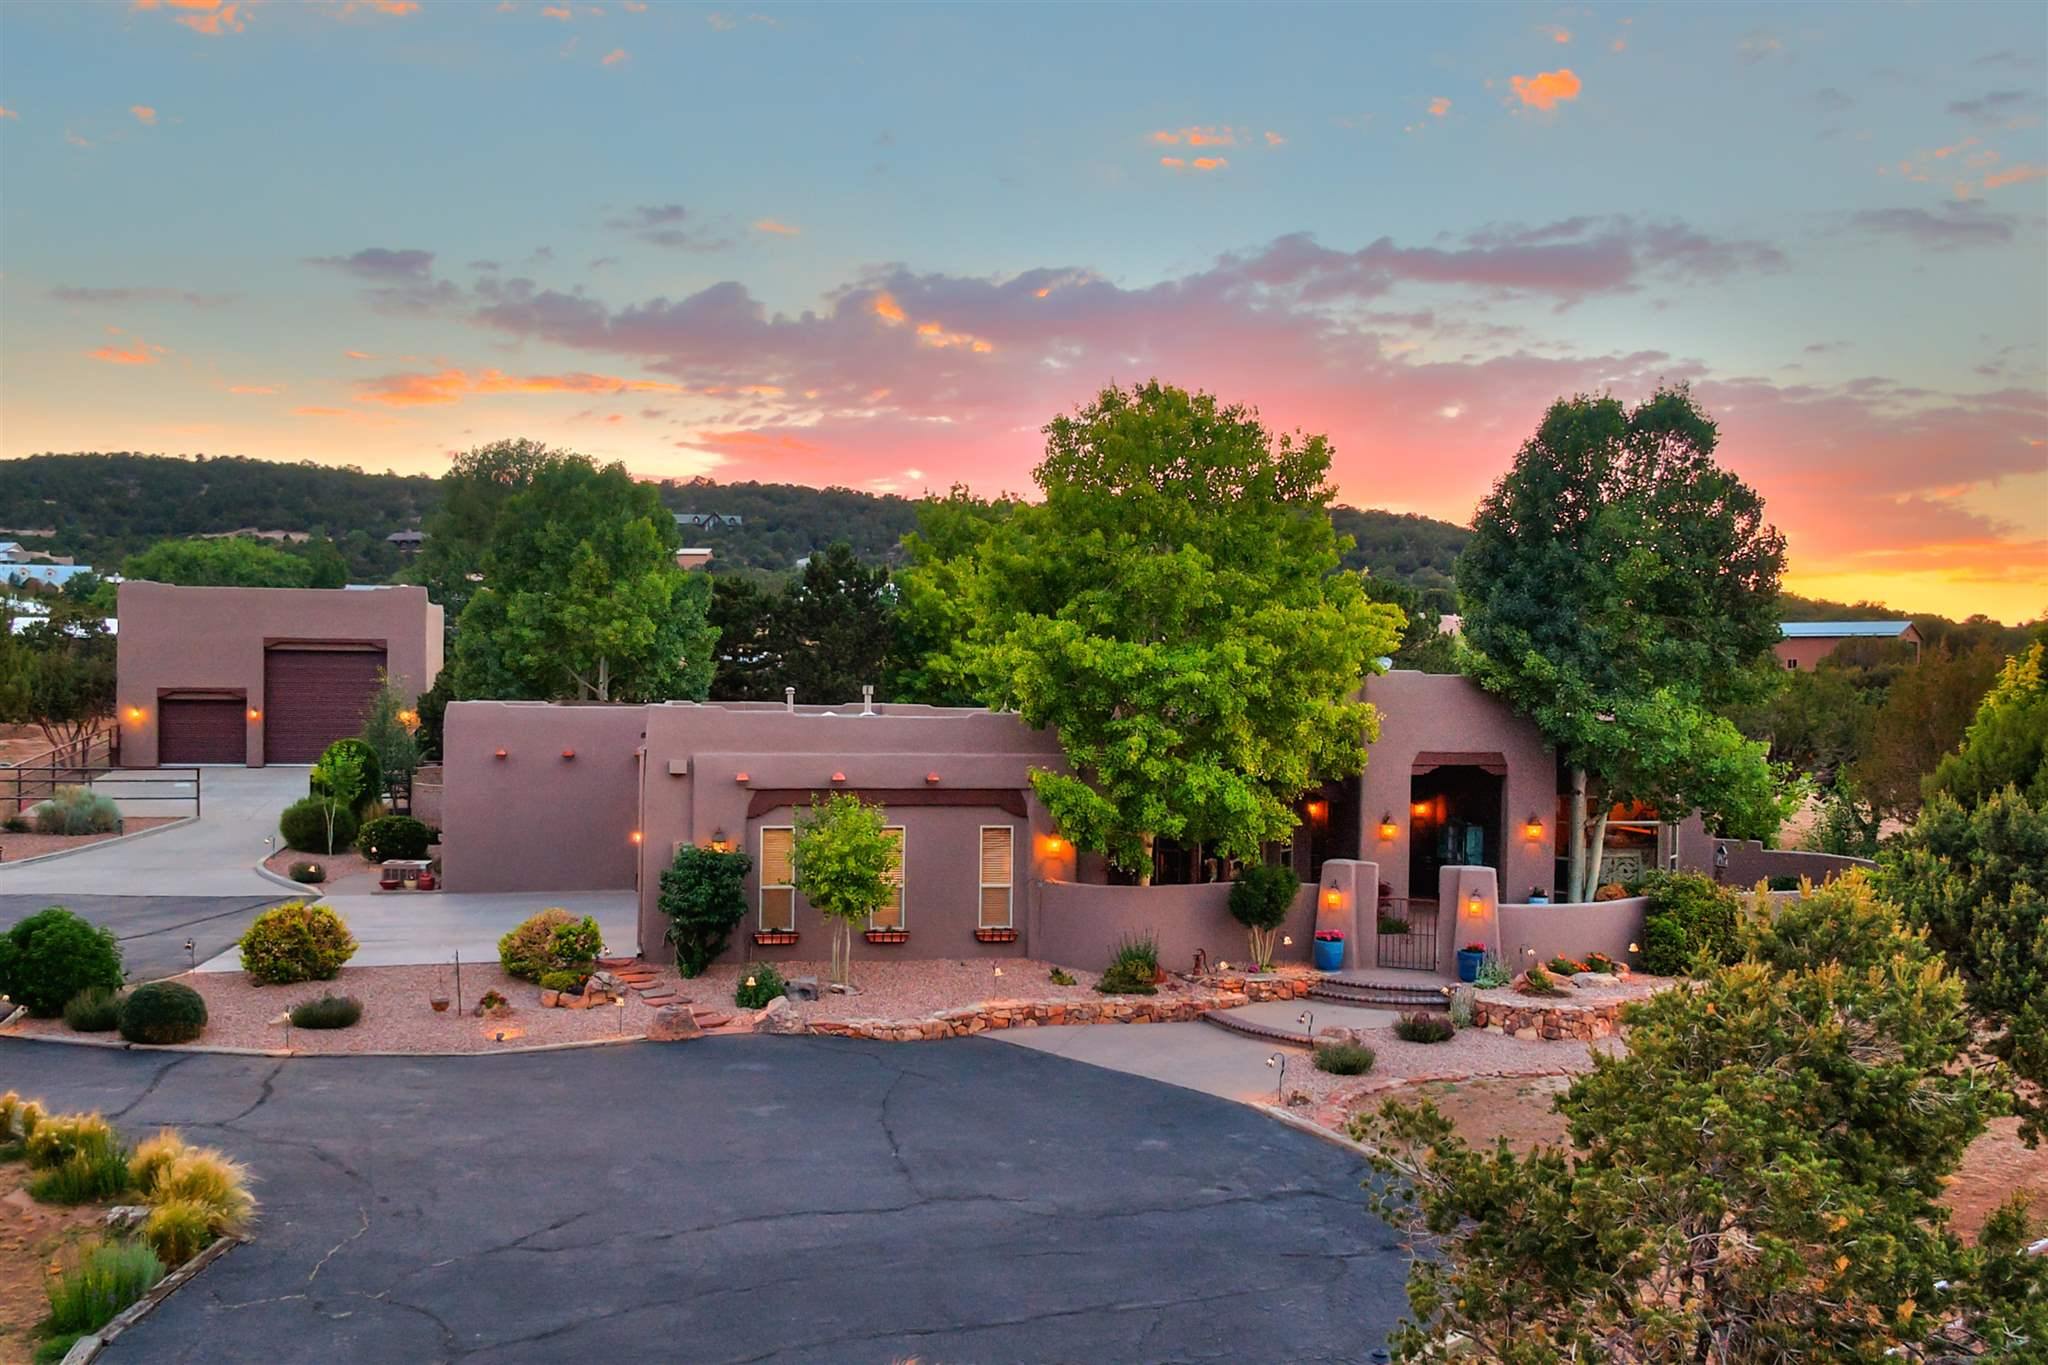 Tucked away in an upscale mountain neighborhood this updated luxury estate enjoys 3586 Sq. Ft. on 4.11 landscaped acres with 4 bedrooms 3 baths, home office and 3 car attached garage with fresh painted floors. Fully fenced with private gated entry, equestrian facilities, RV garage and flex space. Timeless quality with newer roof, stucco, LED lighting and freshly painted making it truly a move-in ready home. An entertaining floorplan complete with formal dining room, family room and open kitchen to easily access the backyard patio. Custom cabinetry, abundant storage, natural wood floors and tile throughout. SW features include vigas, nichos and 2 custom fireplaces. Double ovens, gas stove and beautiful views while you cook make the kitchen the heart of the home. The owners suite features two separate walk-in closets with built-ins, double vanity, jetted tub and separate shower. The guest wing includes three bedrooms adjacent to home office. Horse lovers will enjoy the four stall barn w/ heated tack room, bathroom and shower, upgraded stalls, and easy maintenance feeders/water. Easy trailer entry and exit options.